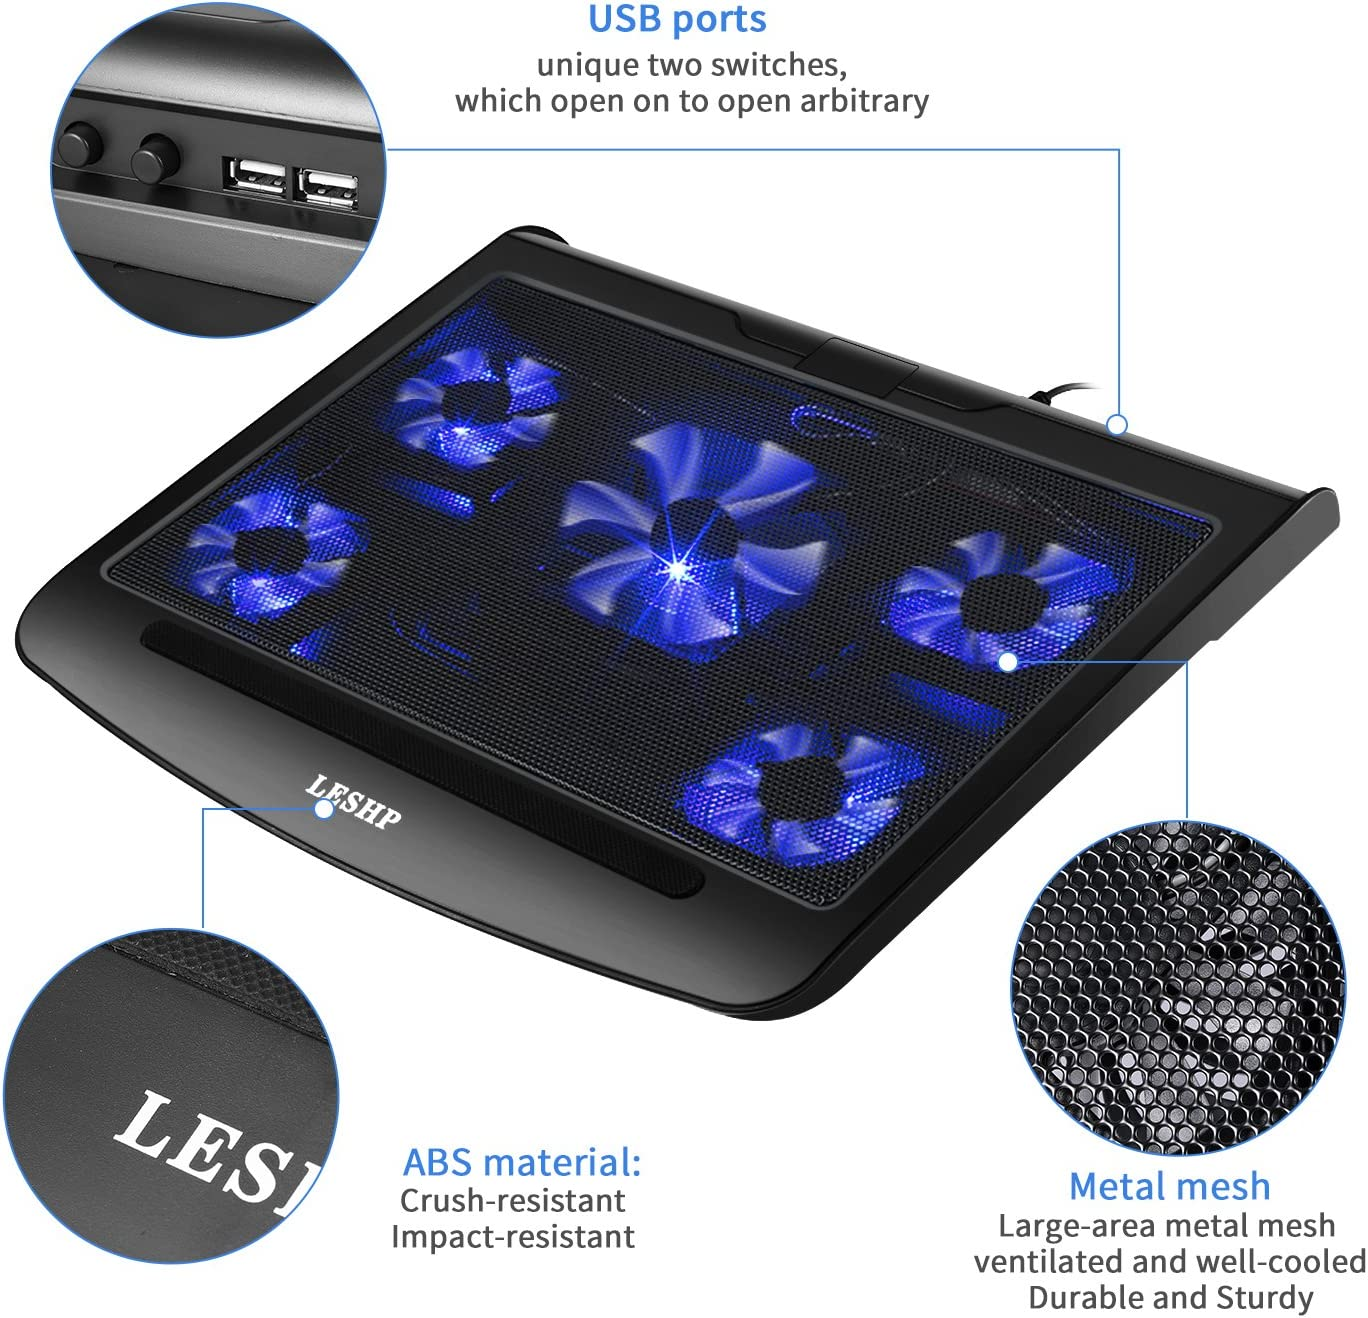 Laptop Gaming Cooling Pad,5 Silent Fan USB Interface Cooler Laptop Cooling Pads Notebook Cooling Pad Radiator T5 Lightweight Black Unique Two Switches Fits 15.4 /Inches